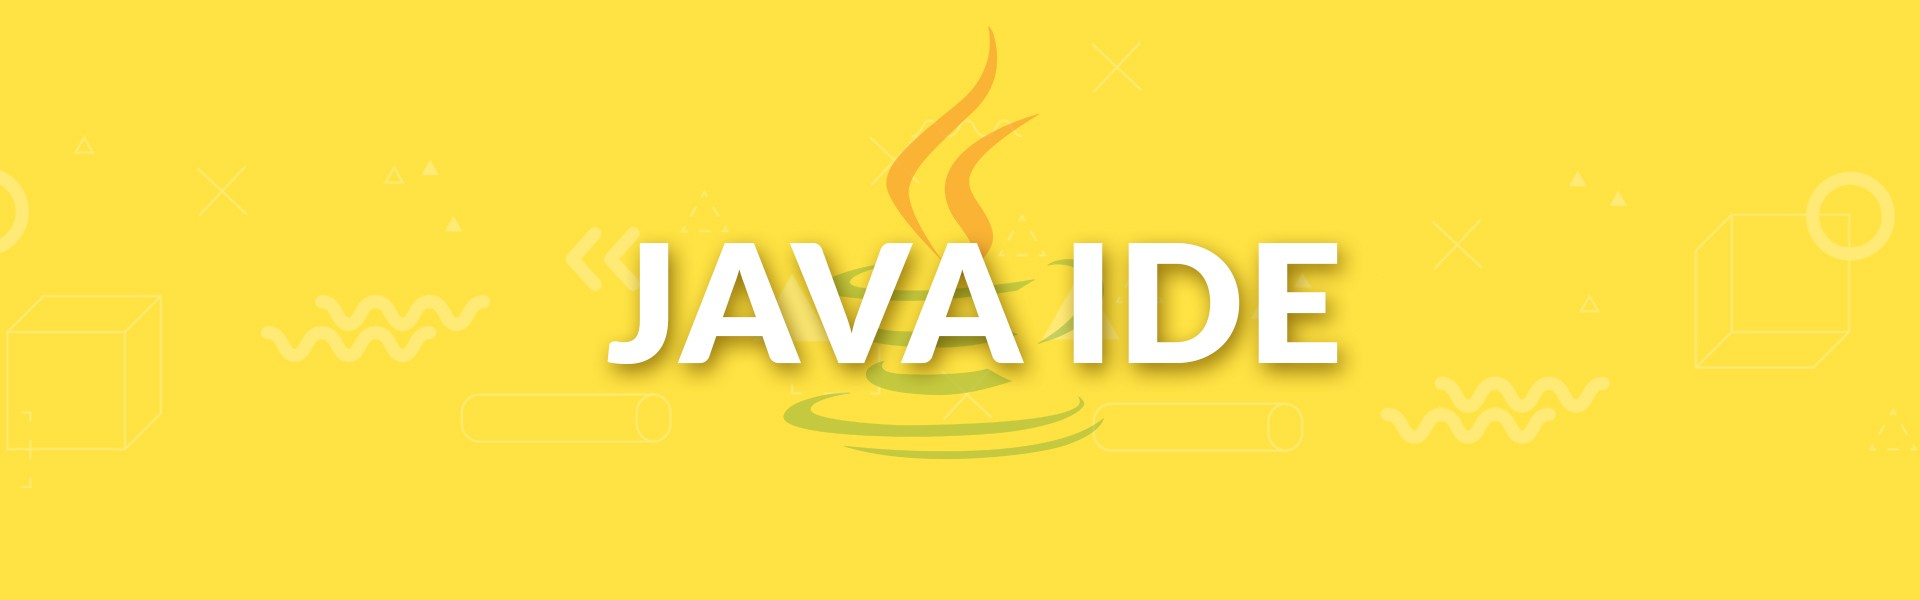 6-Best-IDE-for-java-of-all-time-1